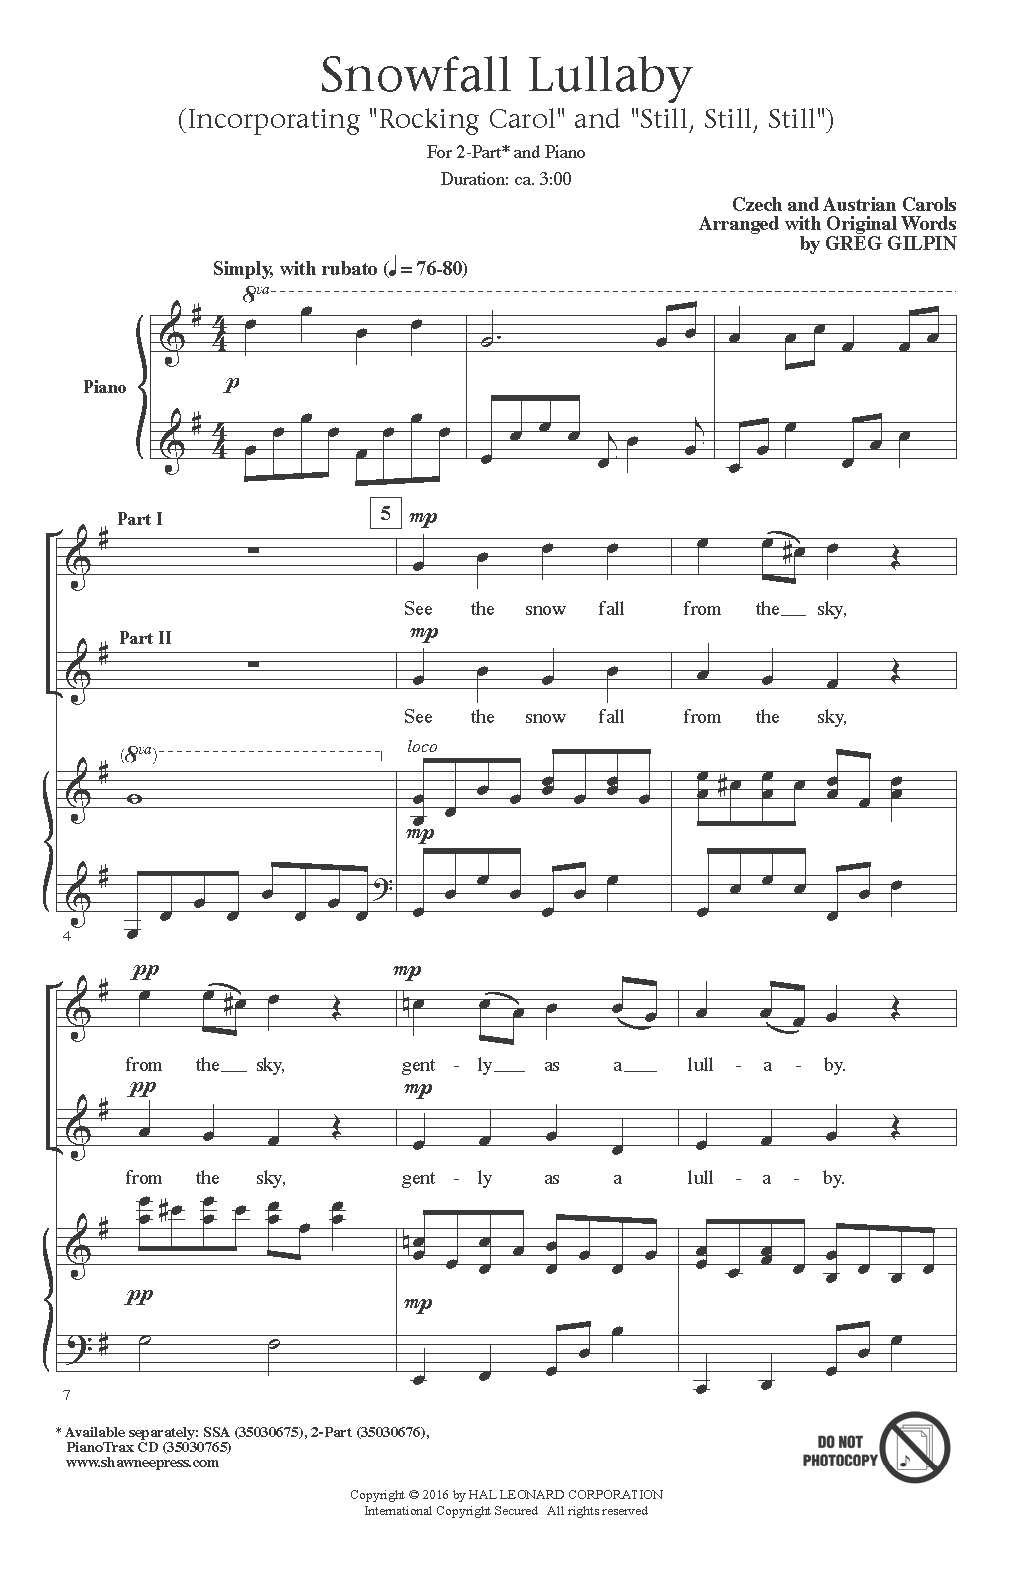 Greg Gilpin Snowfall Lullaby sheet music notes and chords. Download Printable PDF.